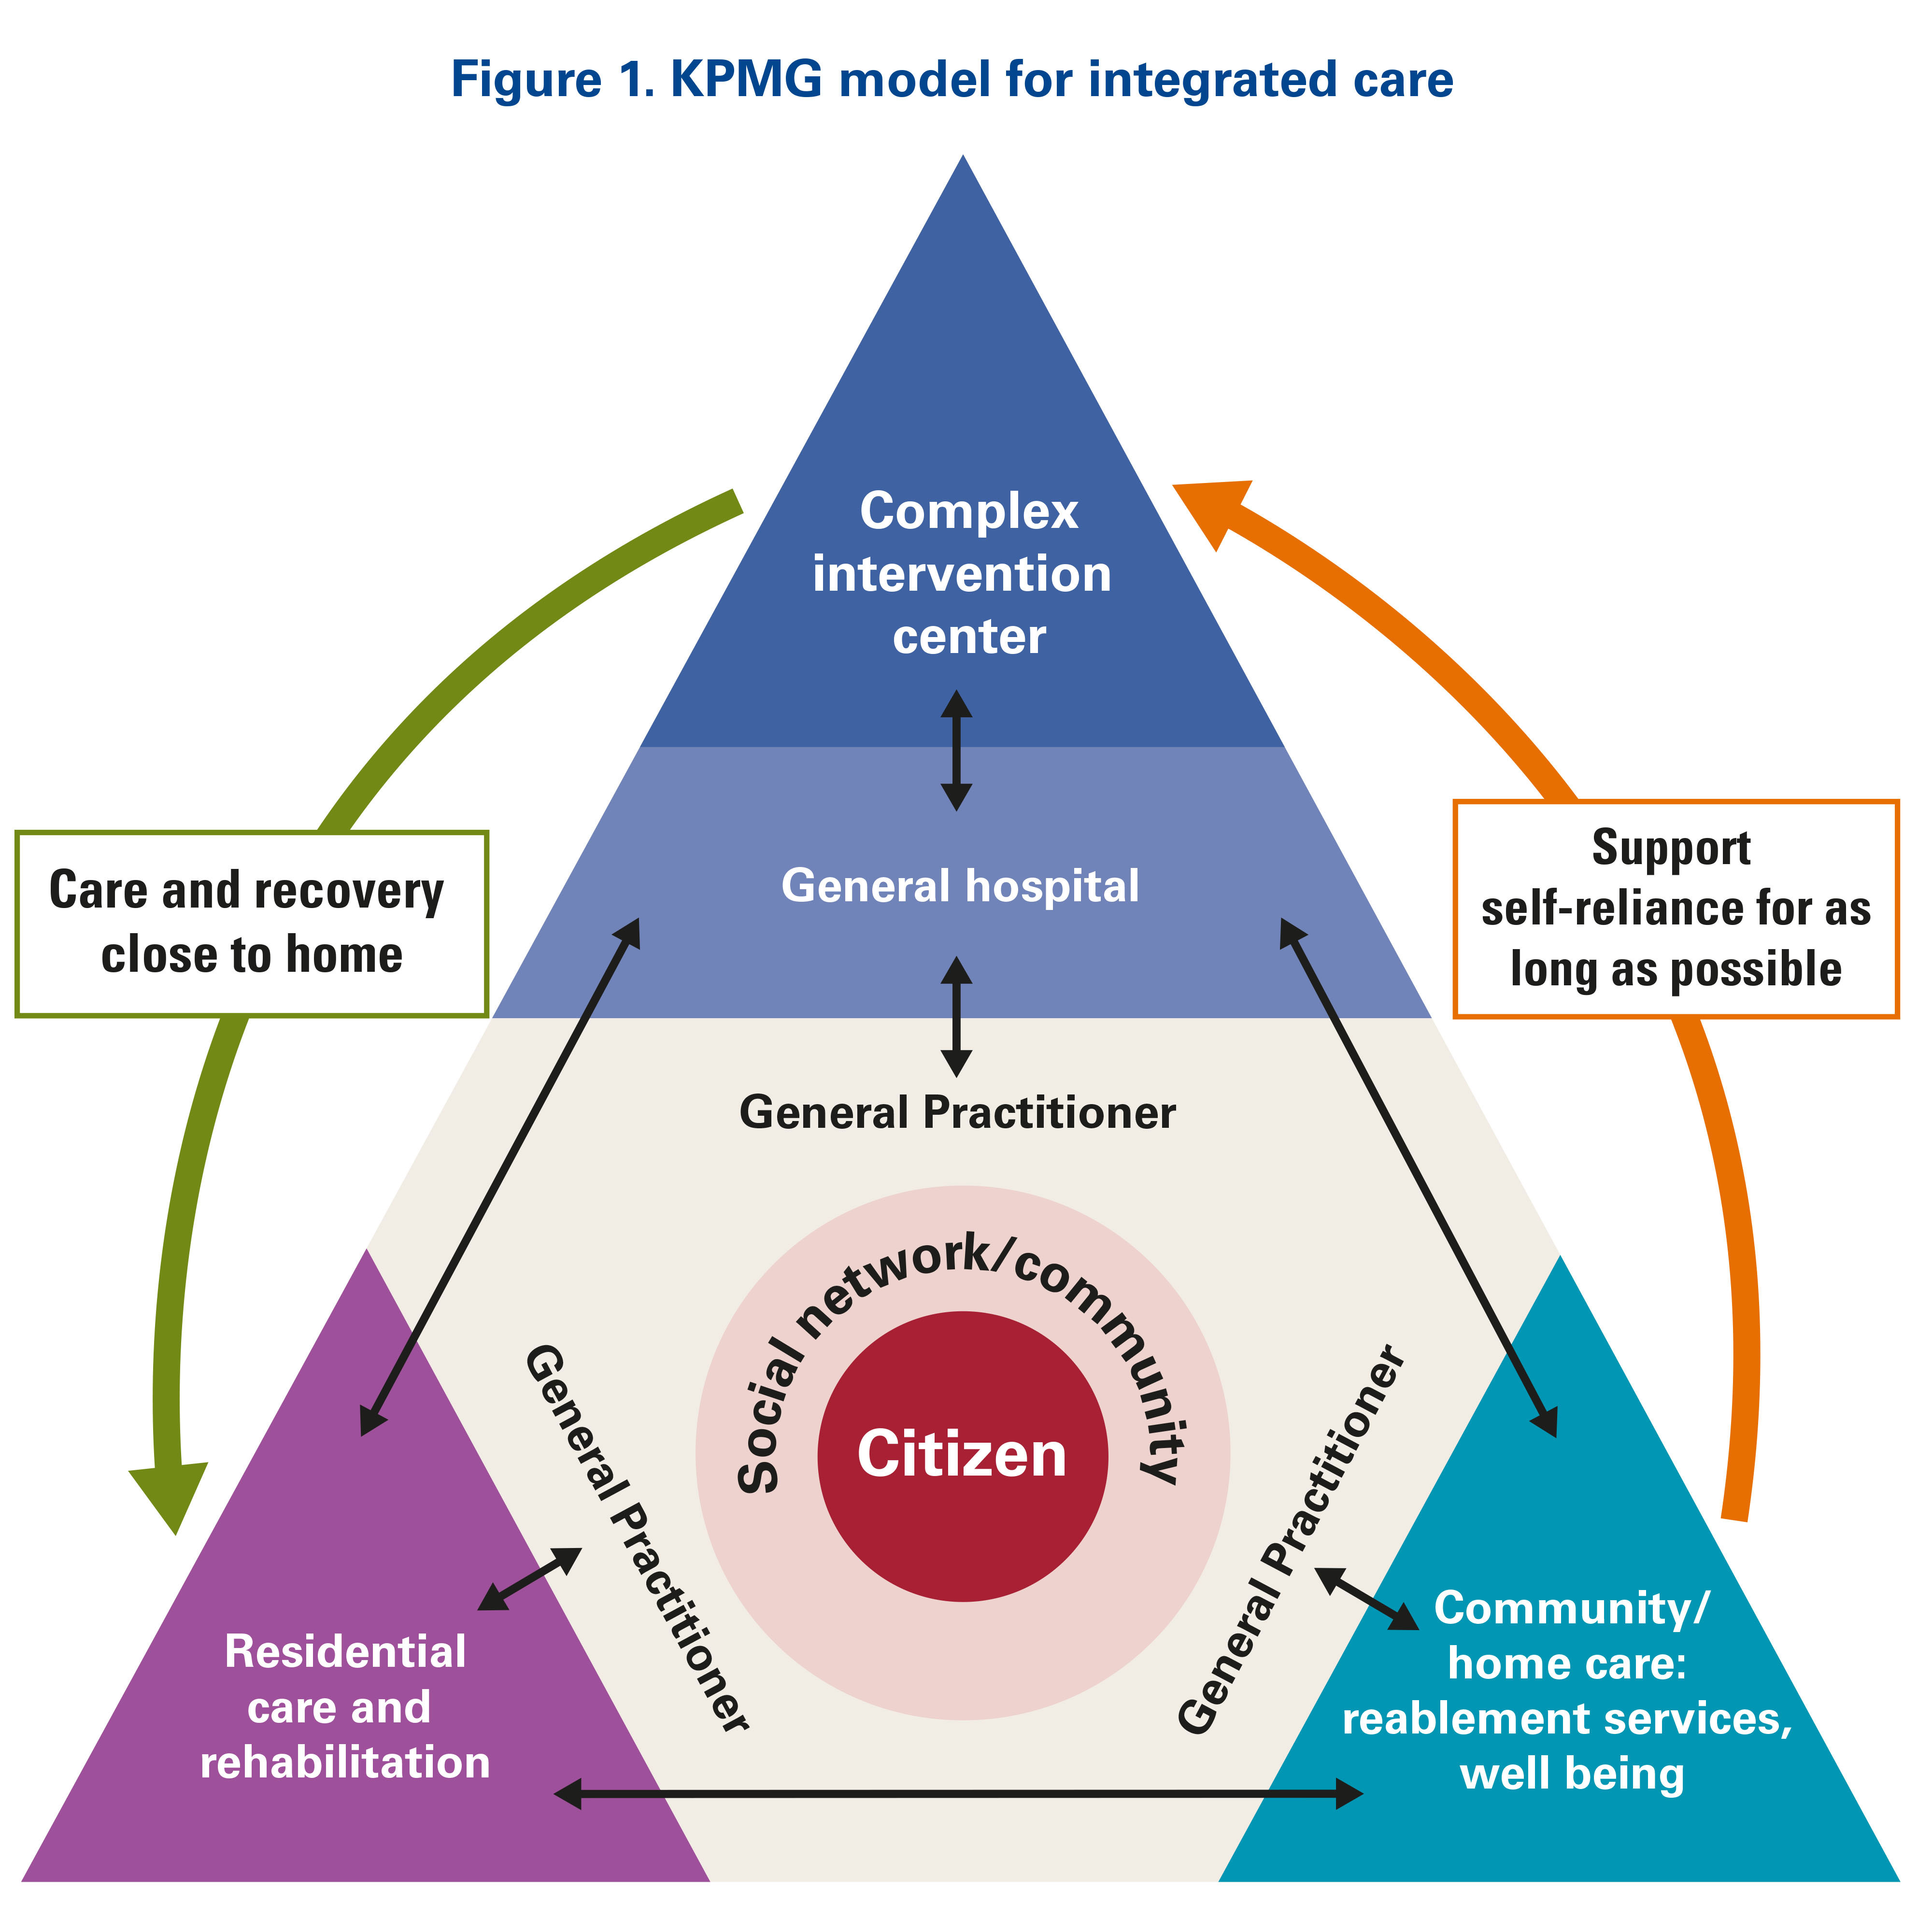 KPMG model for integrated care